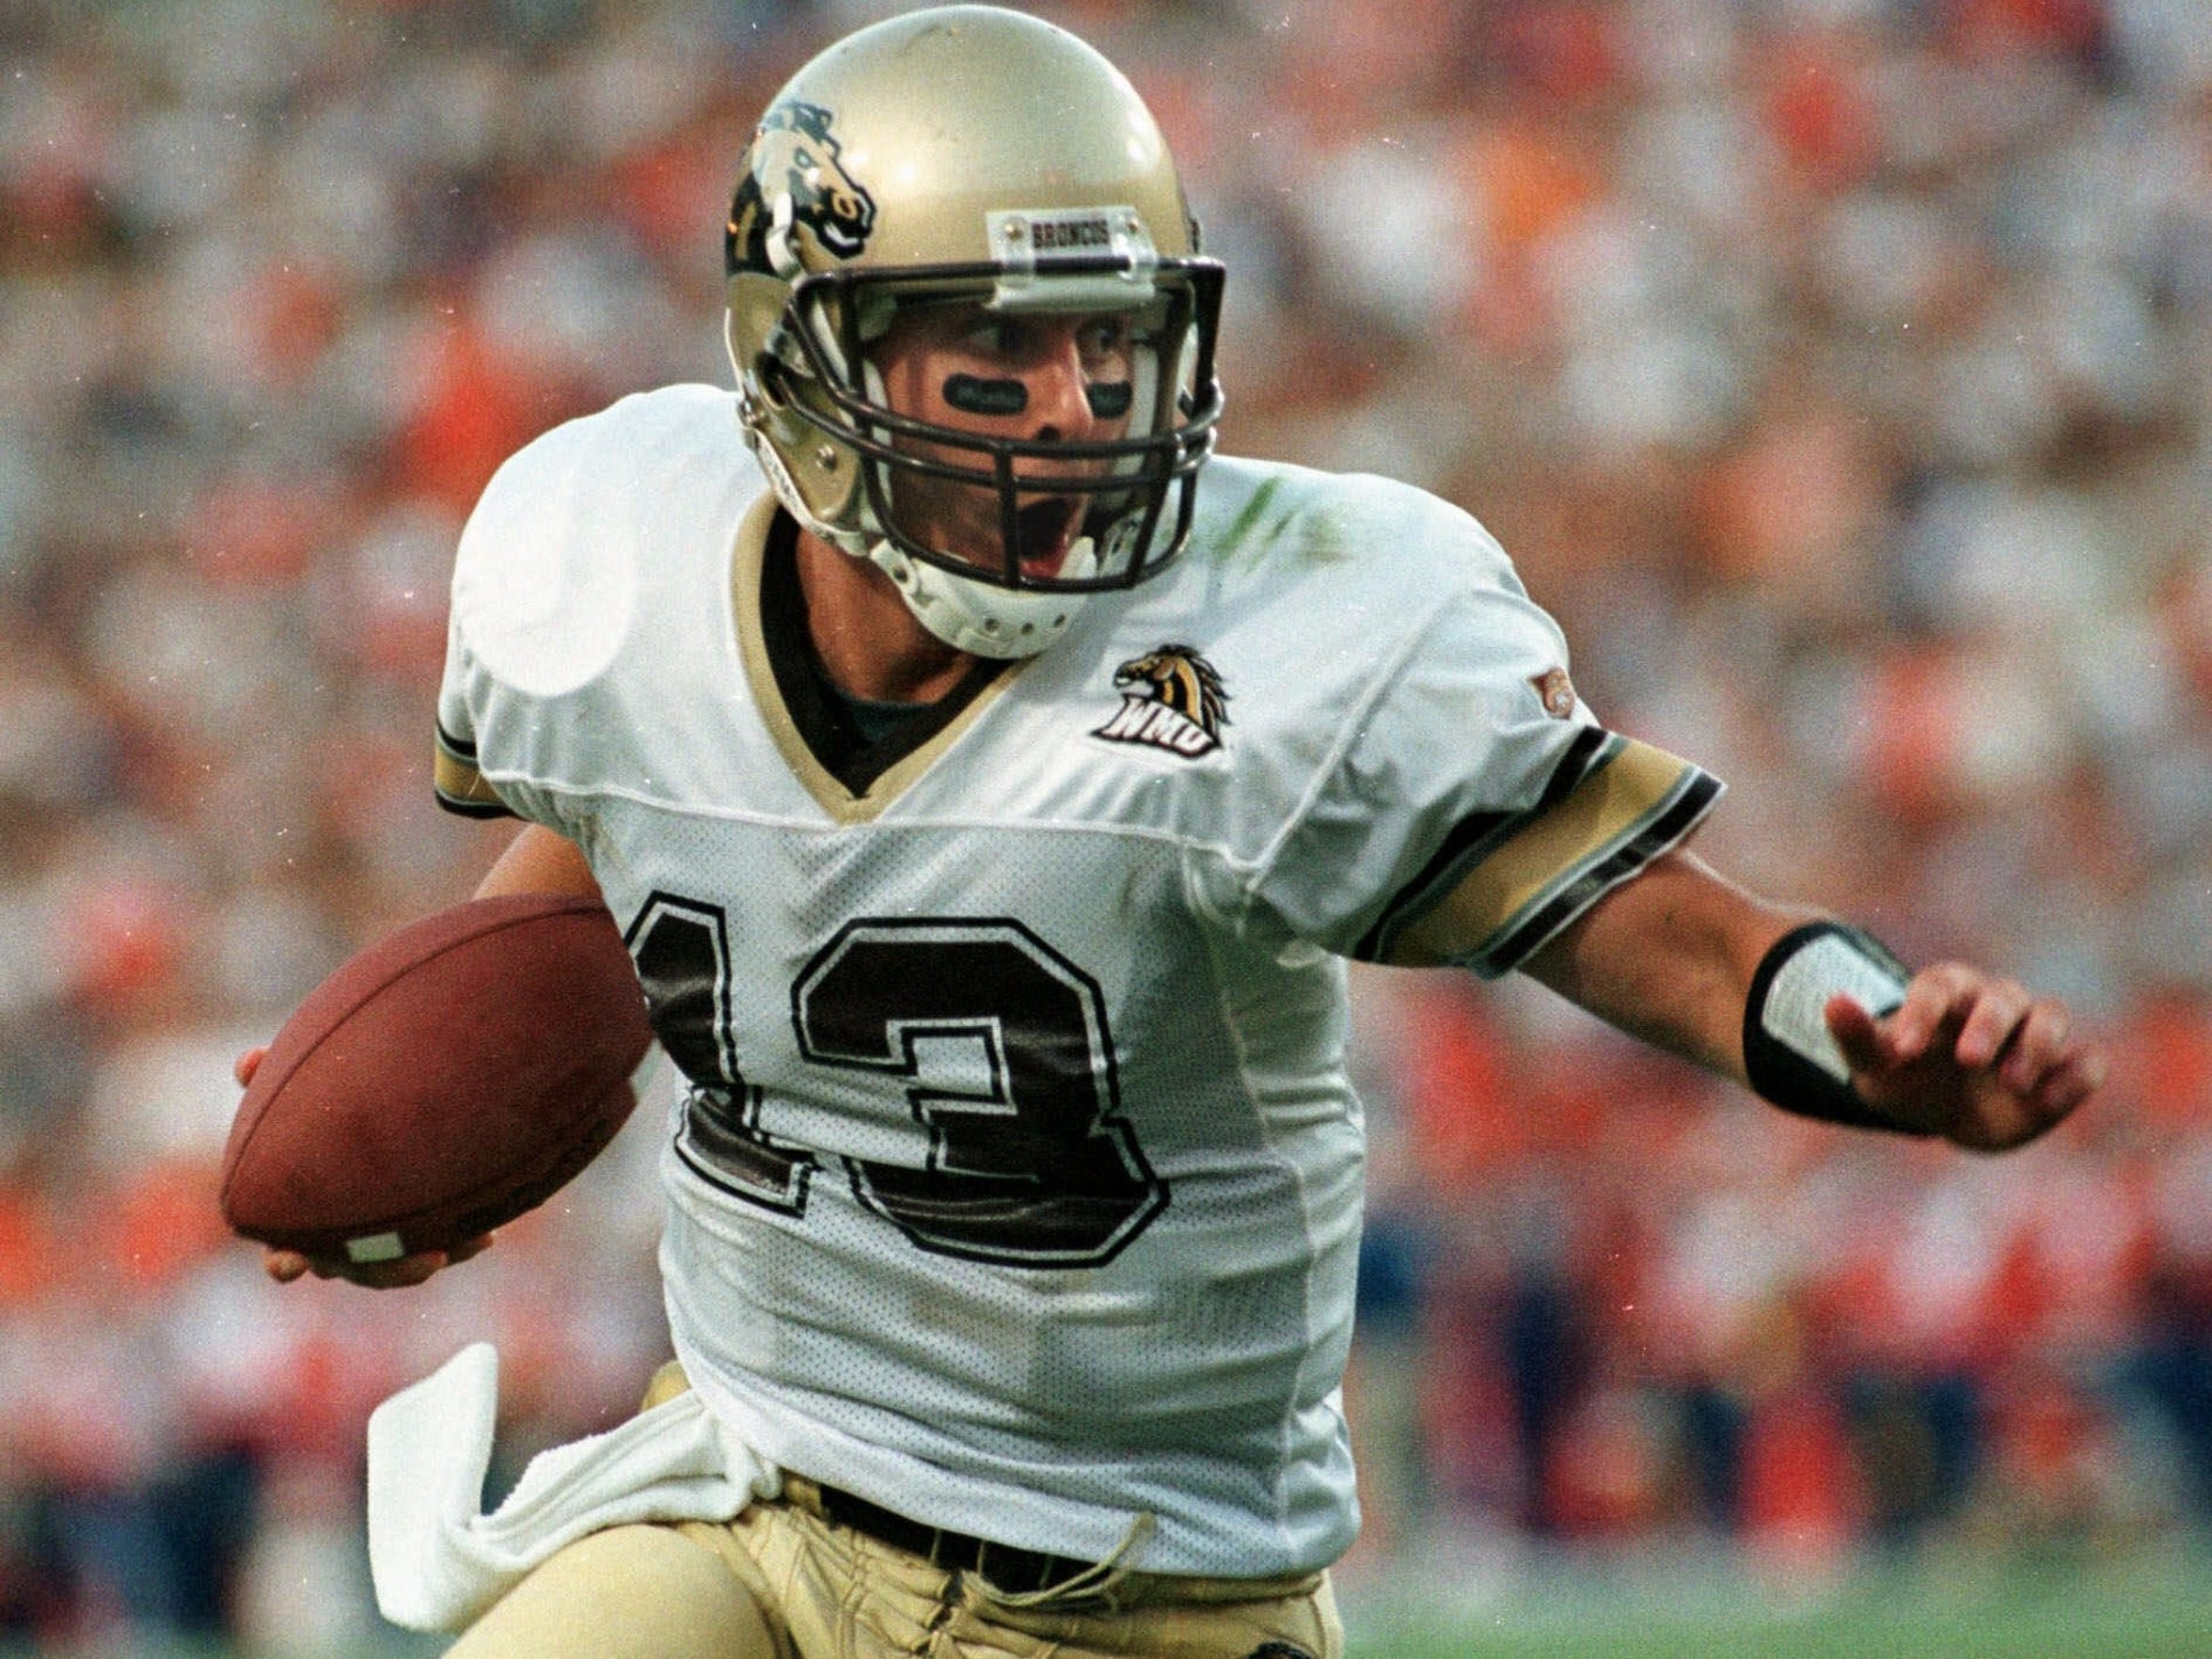 Tim Lester runs with the ball against Florida on Sept. 4, 1999.